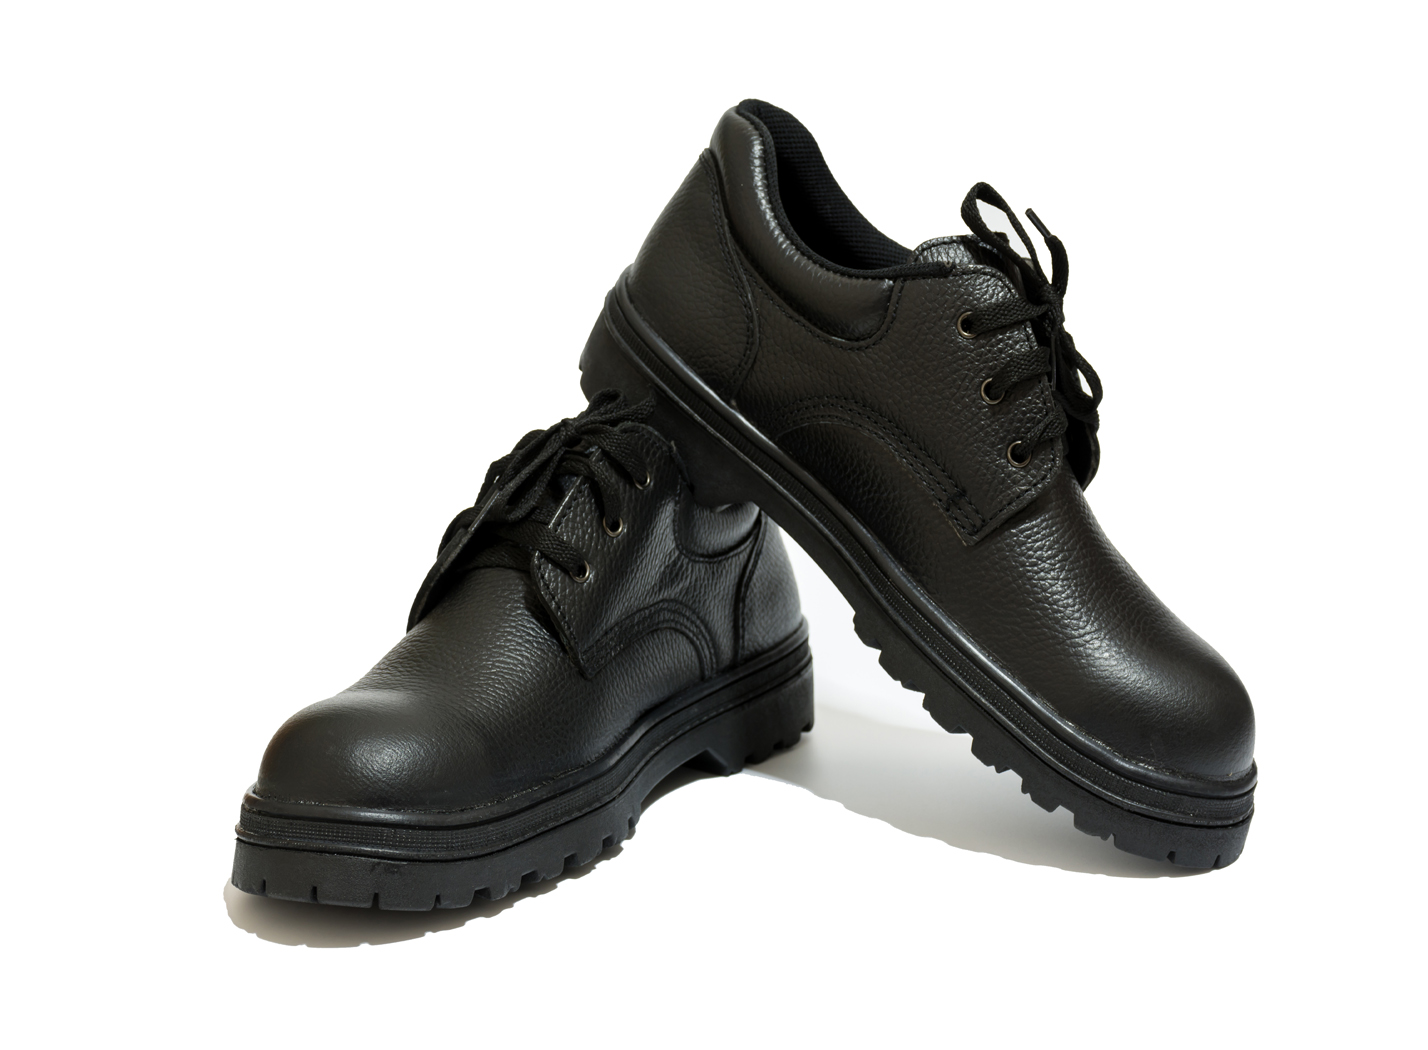 19a1060c413 10 Best Safety Shoes Reviewed & Rated in 2019 | WalkJogRun